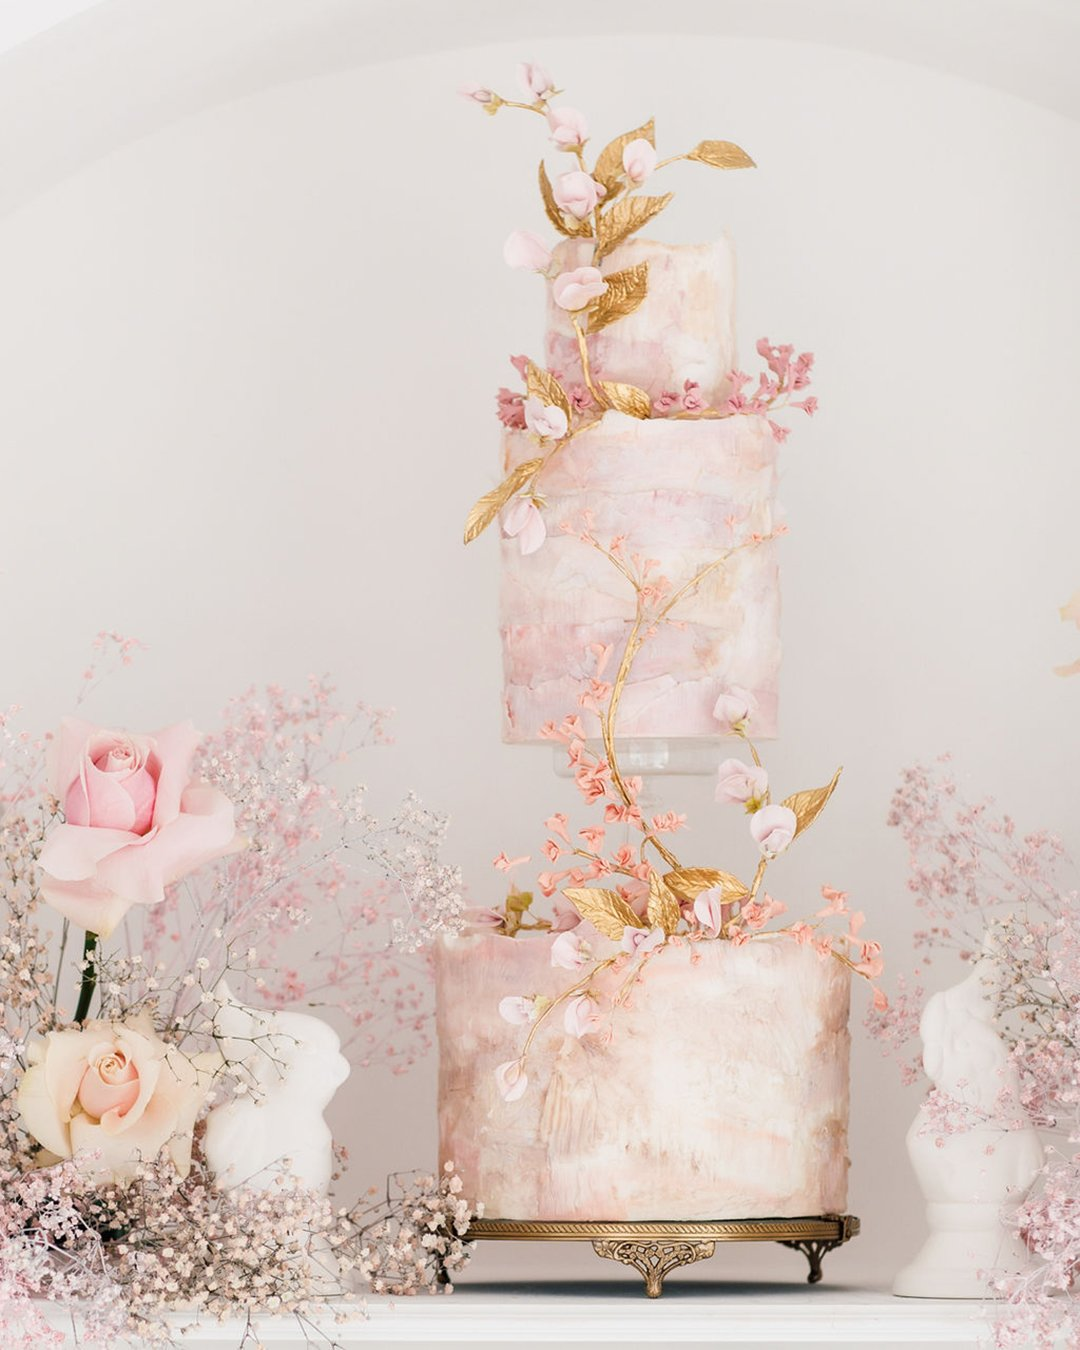 wedding cake trends tebder sqiare cake nadiaandco